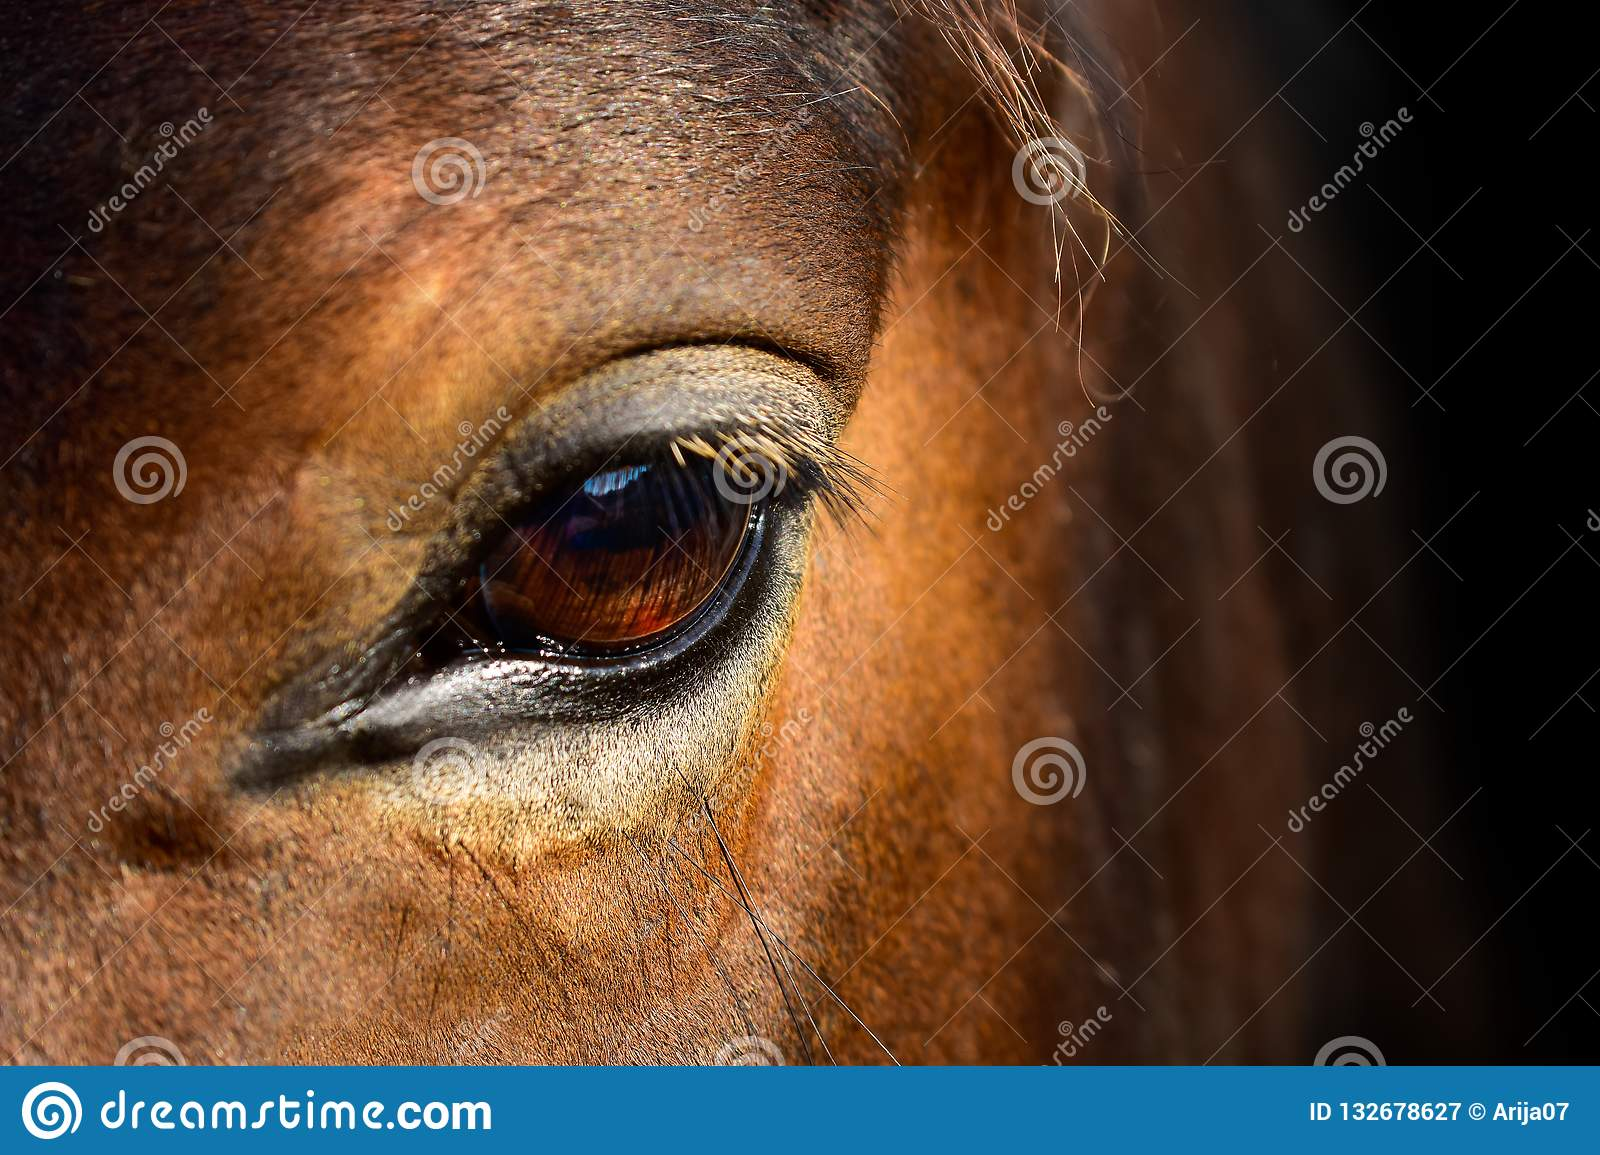 Brown horse head eyes. A closeup portrait of the face of a horse